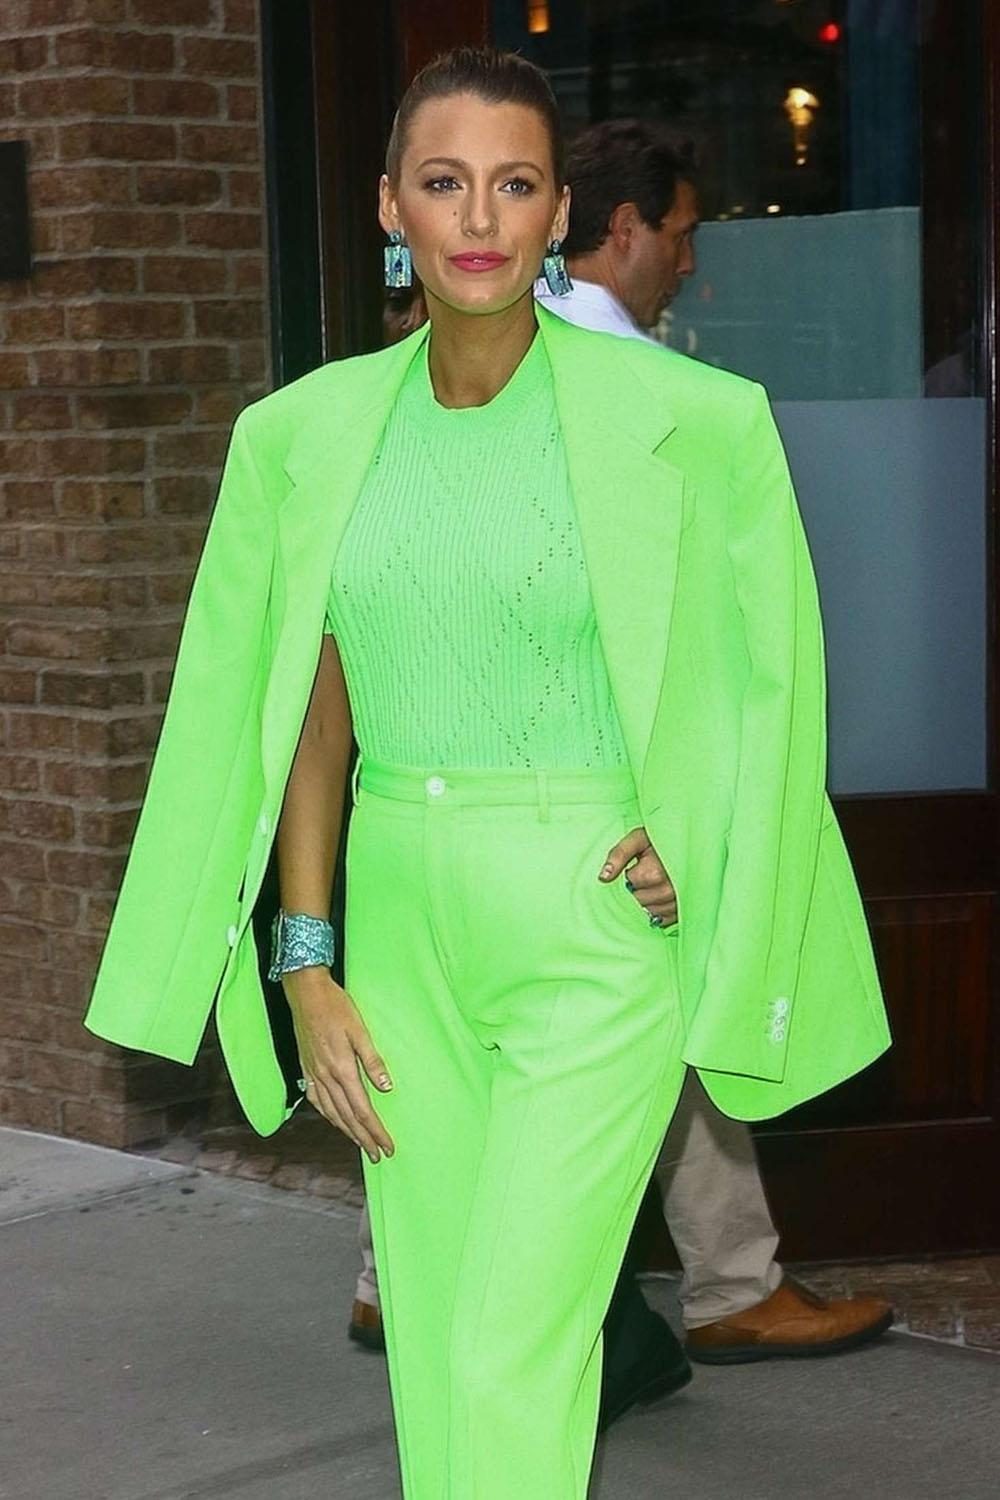 blake-lively-green-dress. Al estilo de Blake Lively